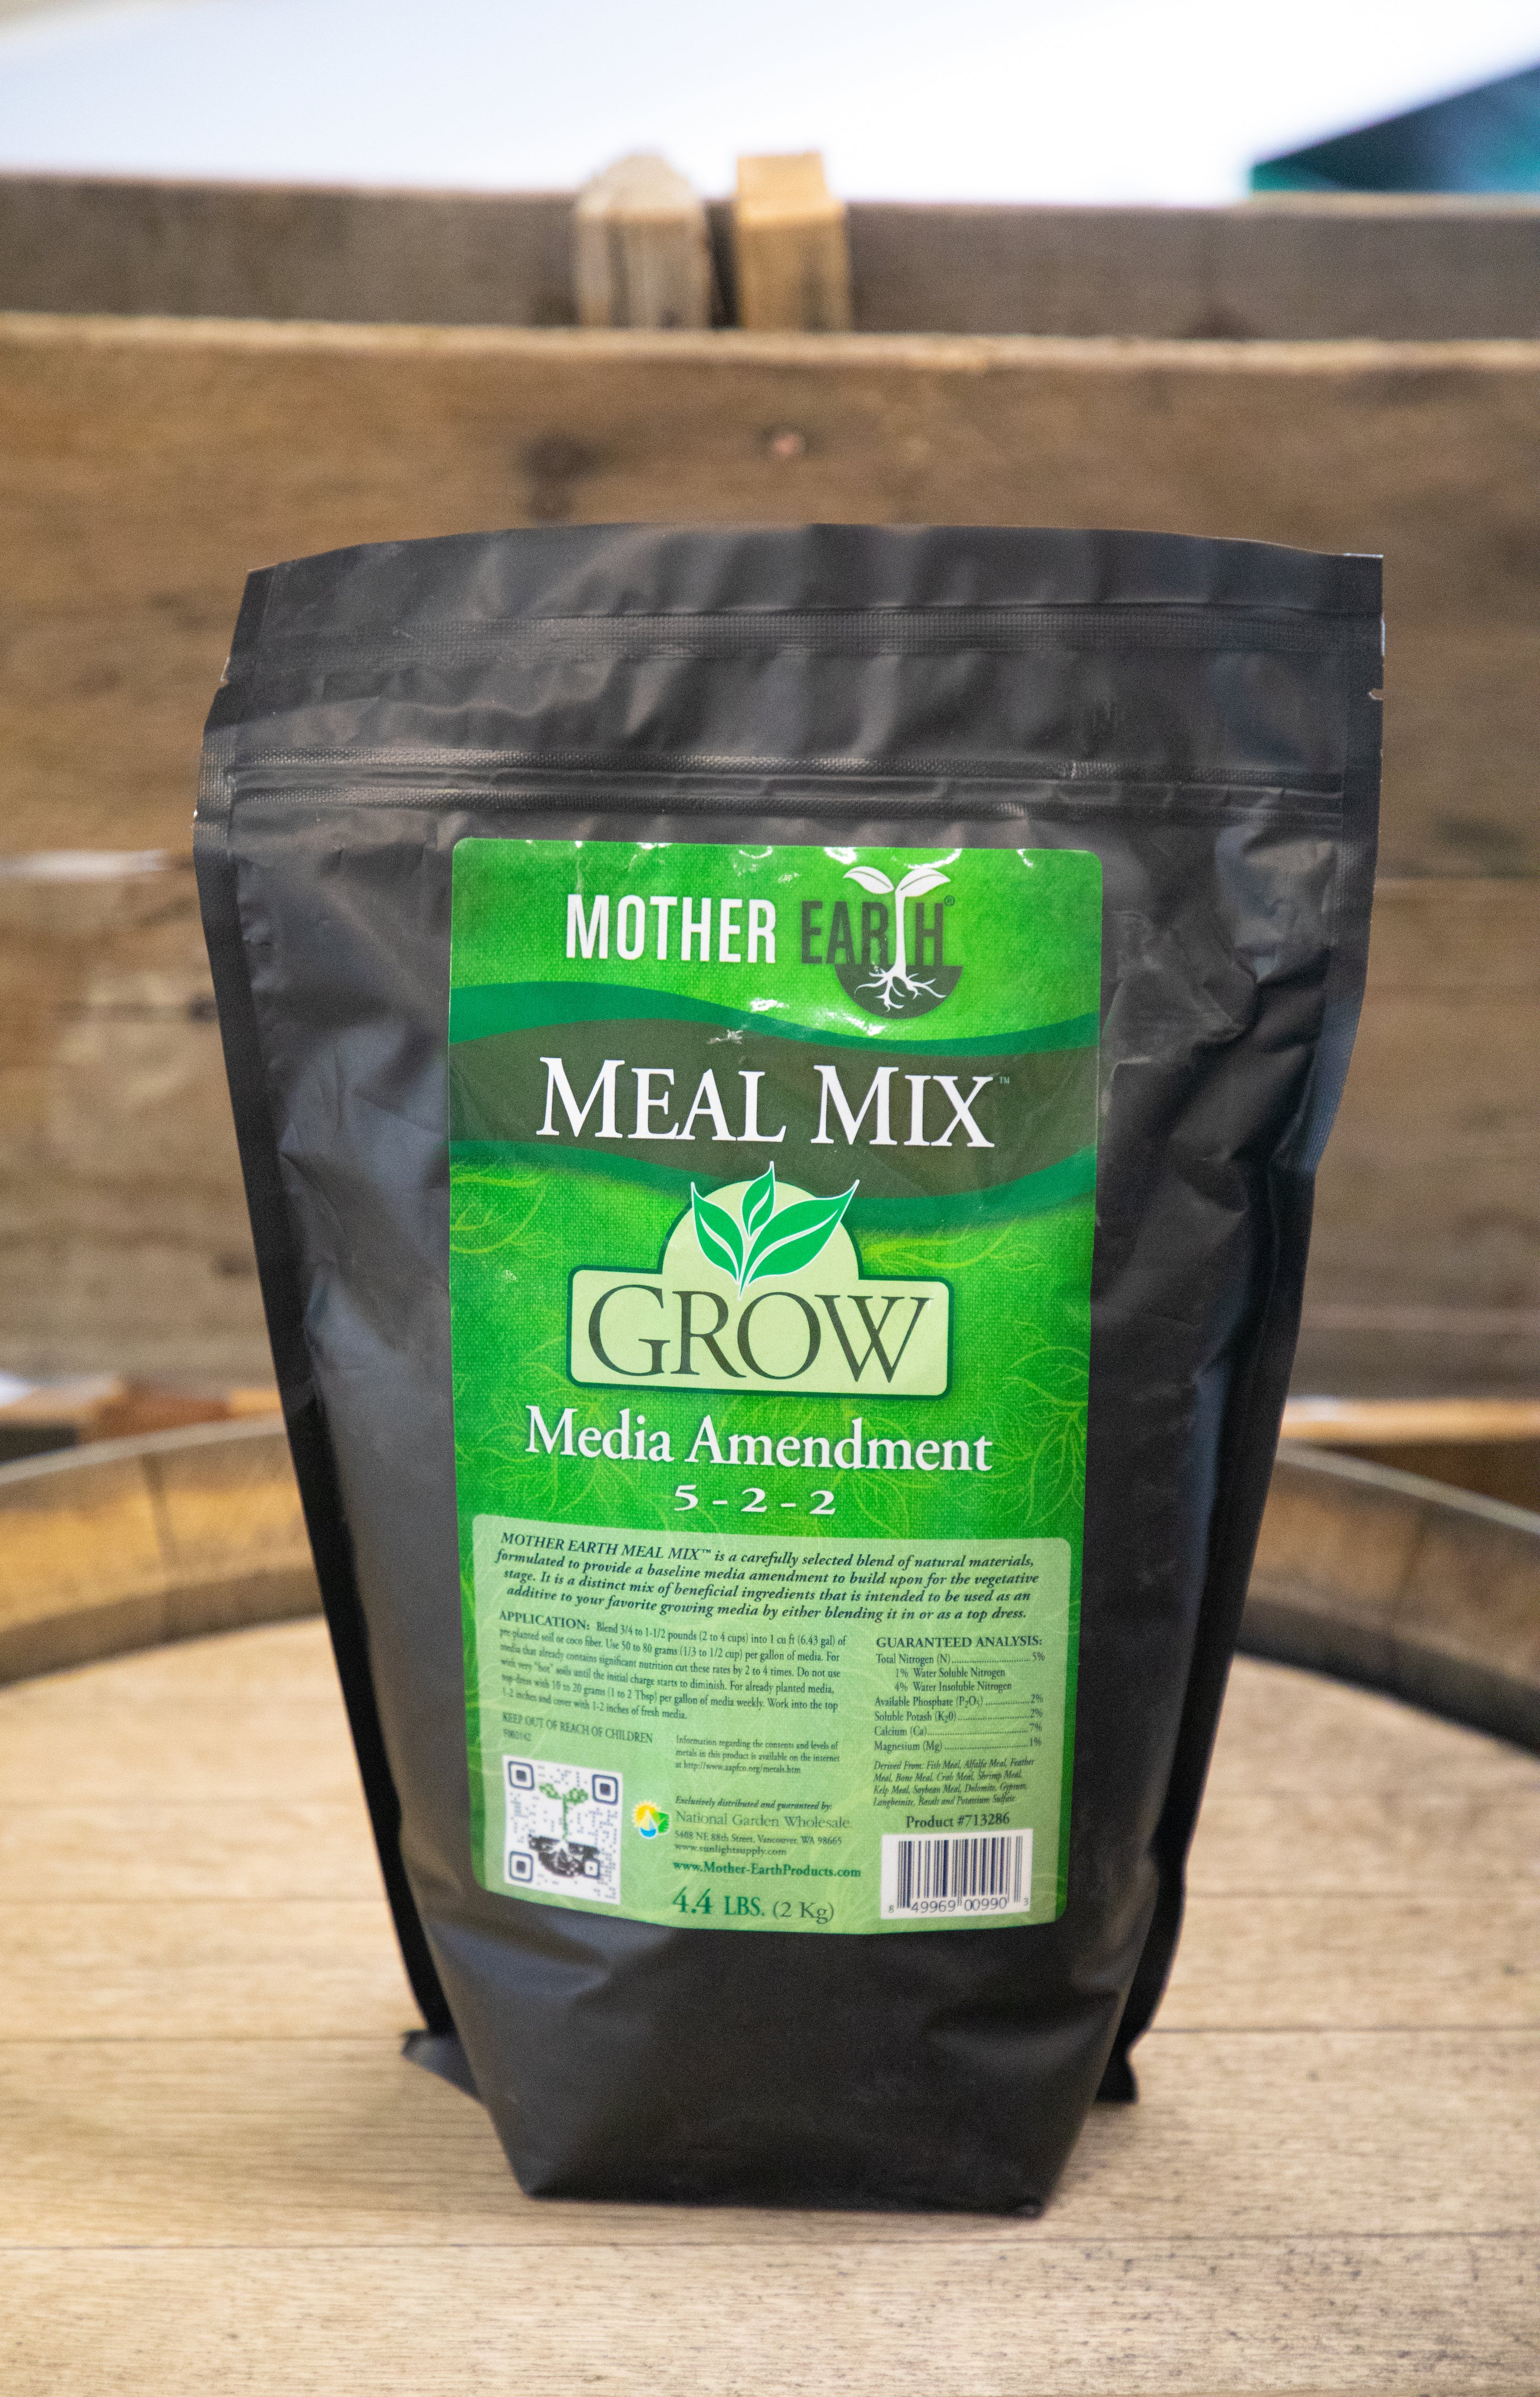 Mother Earth Meal Mix® Grow 5-2-2 - Shasta Forest Products, Inc